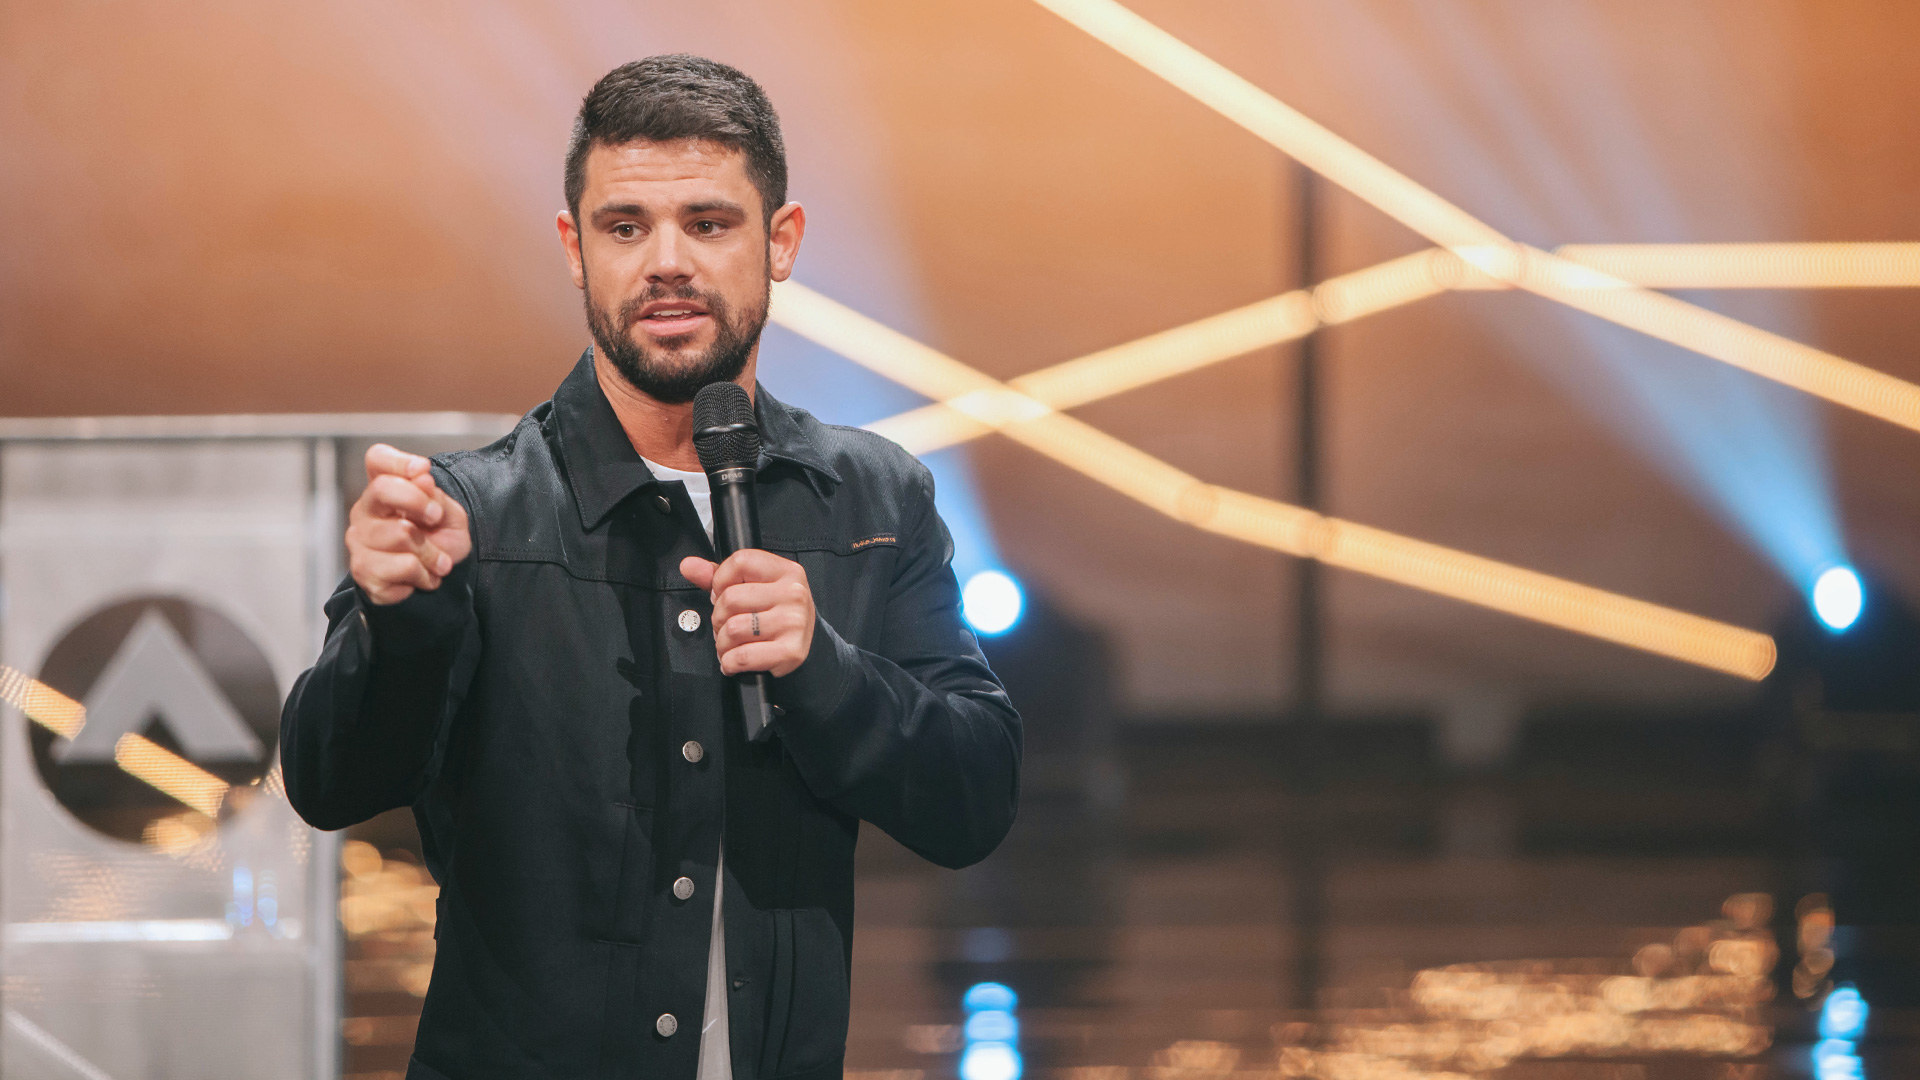 Don't Miss Your Turn, Elevation Church, Steven Furtick